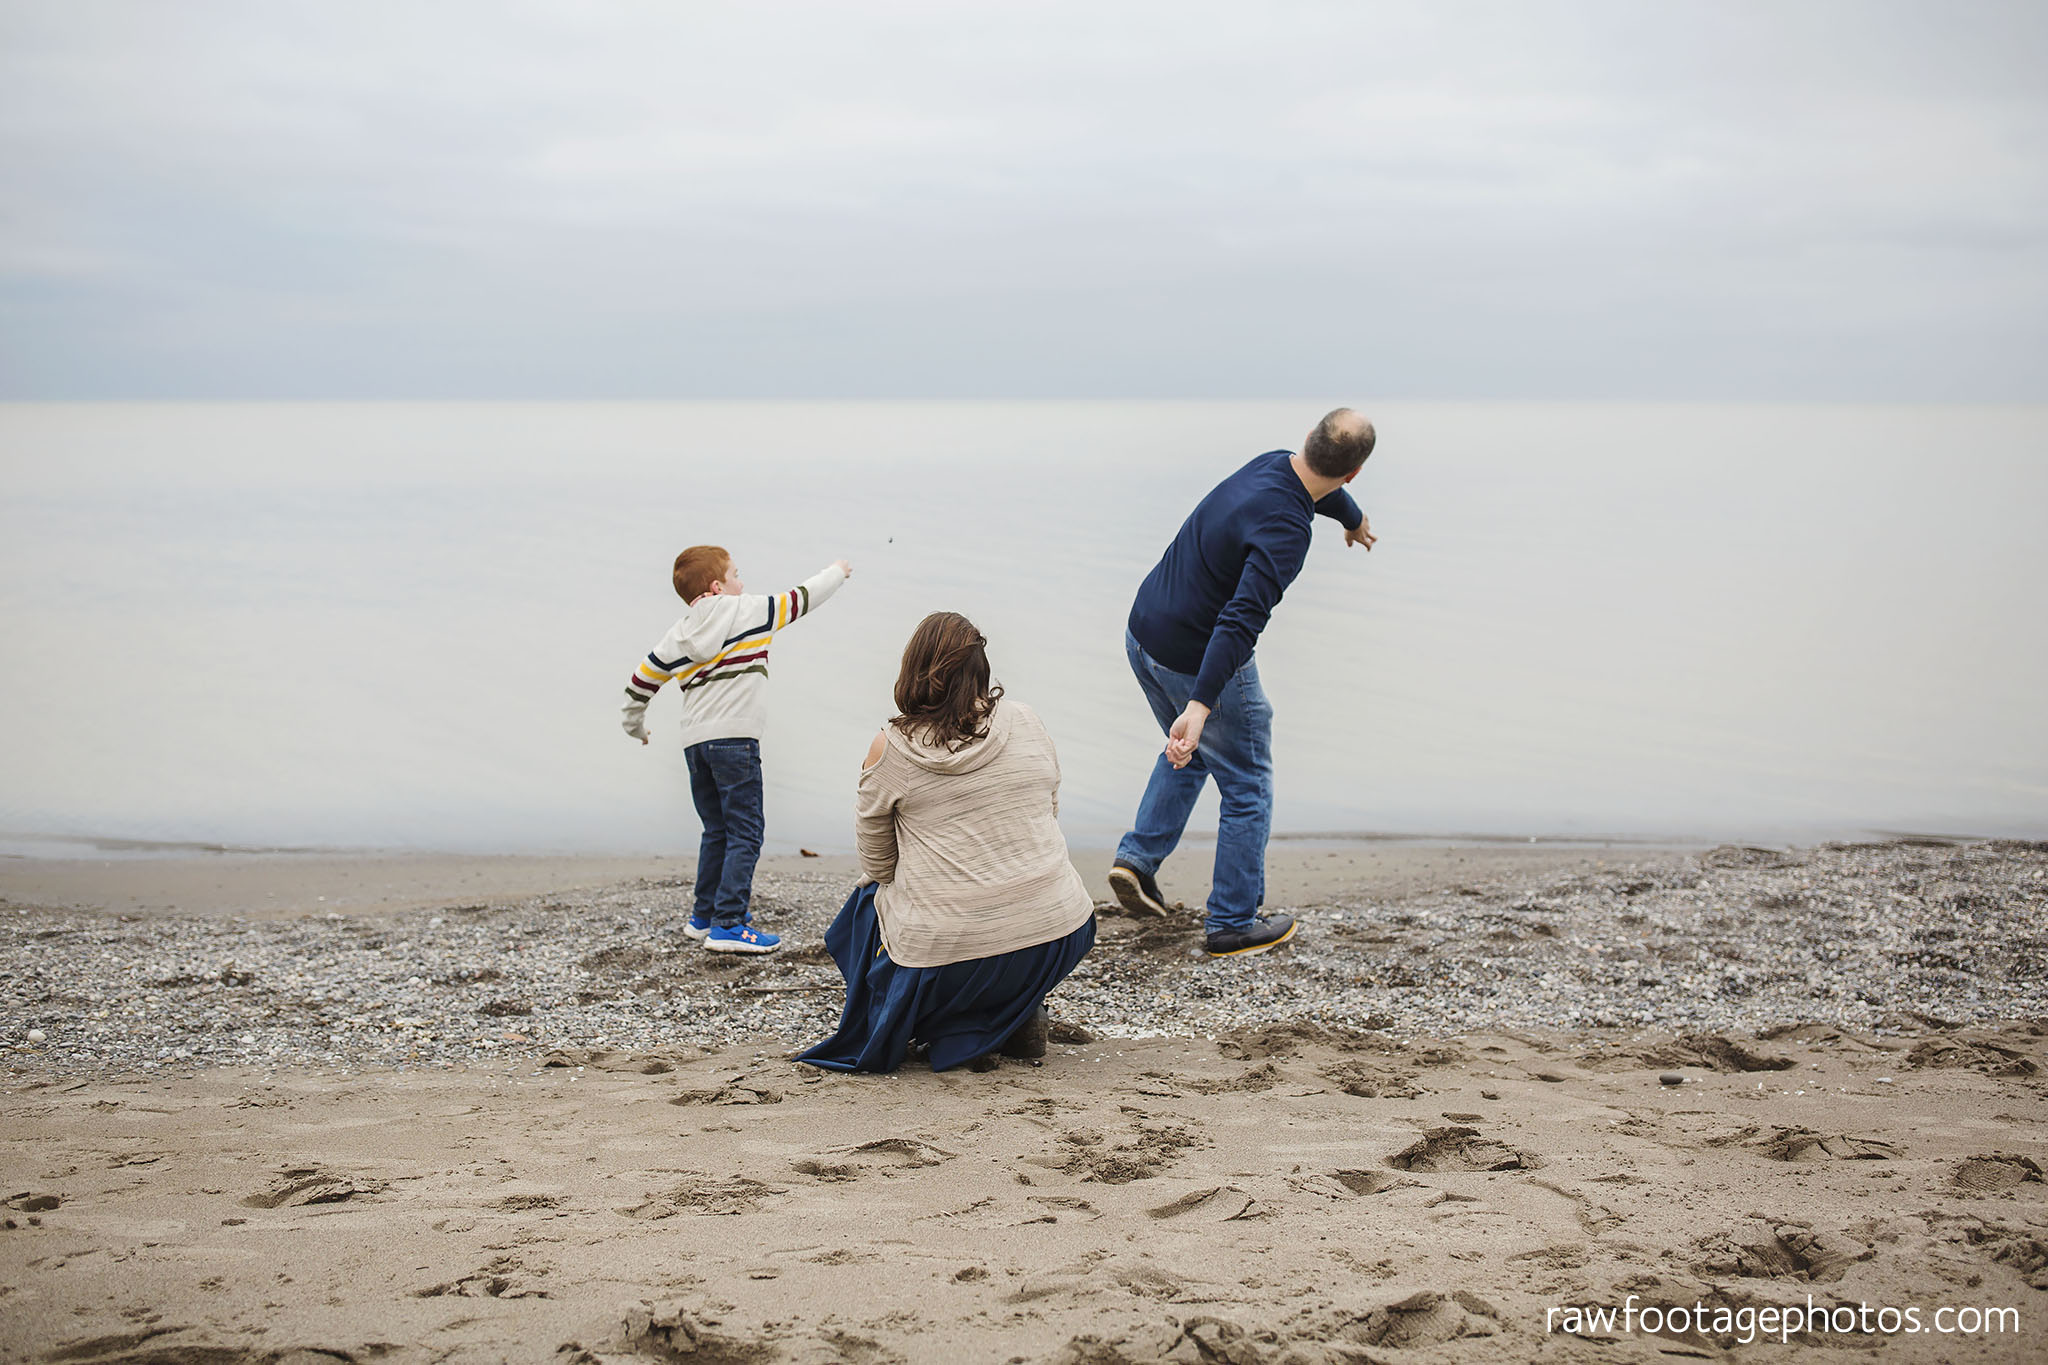 london_ontario_family_photographer-port_stanley_photography-raw_footage_photography-family_photos-beach_photos-fall_family_photos-lifestyle_family_photography-candid_photographer023.jpg